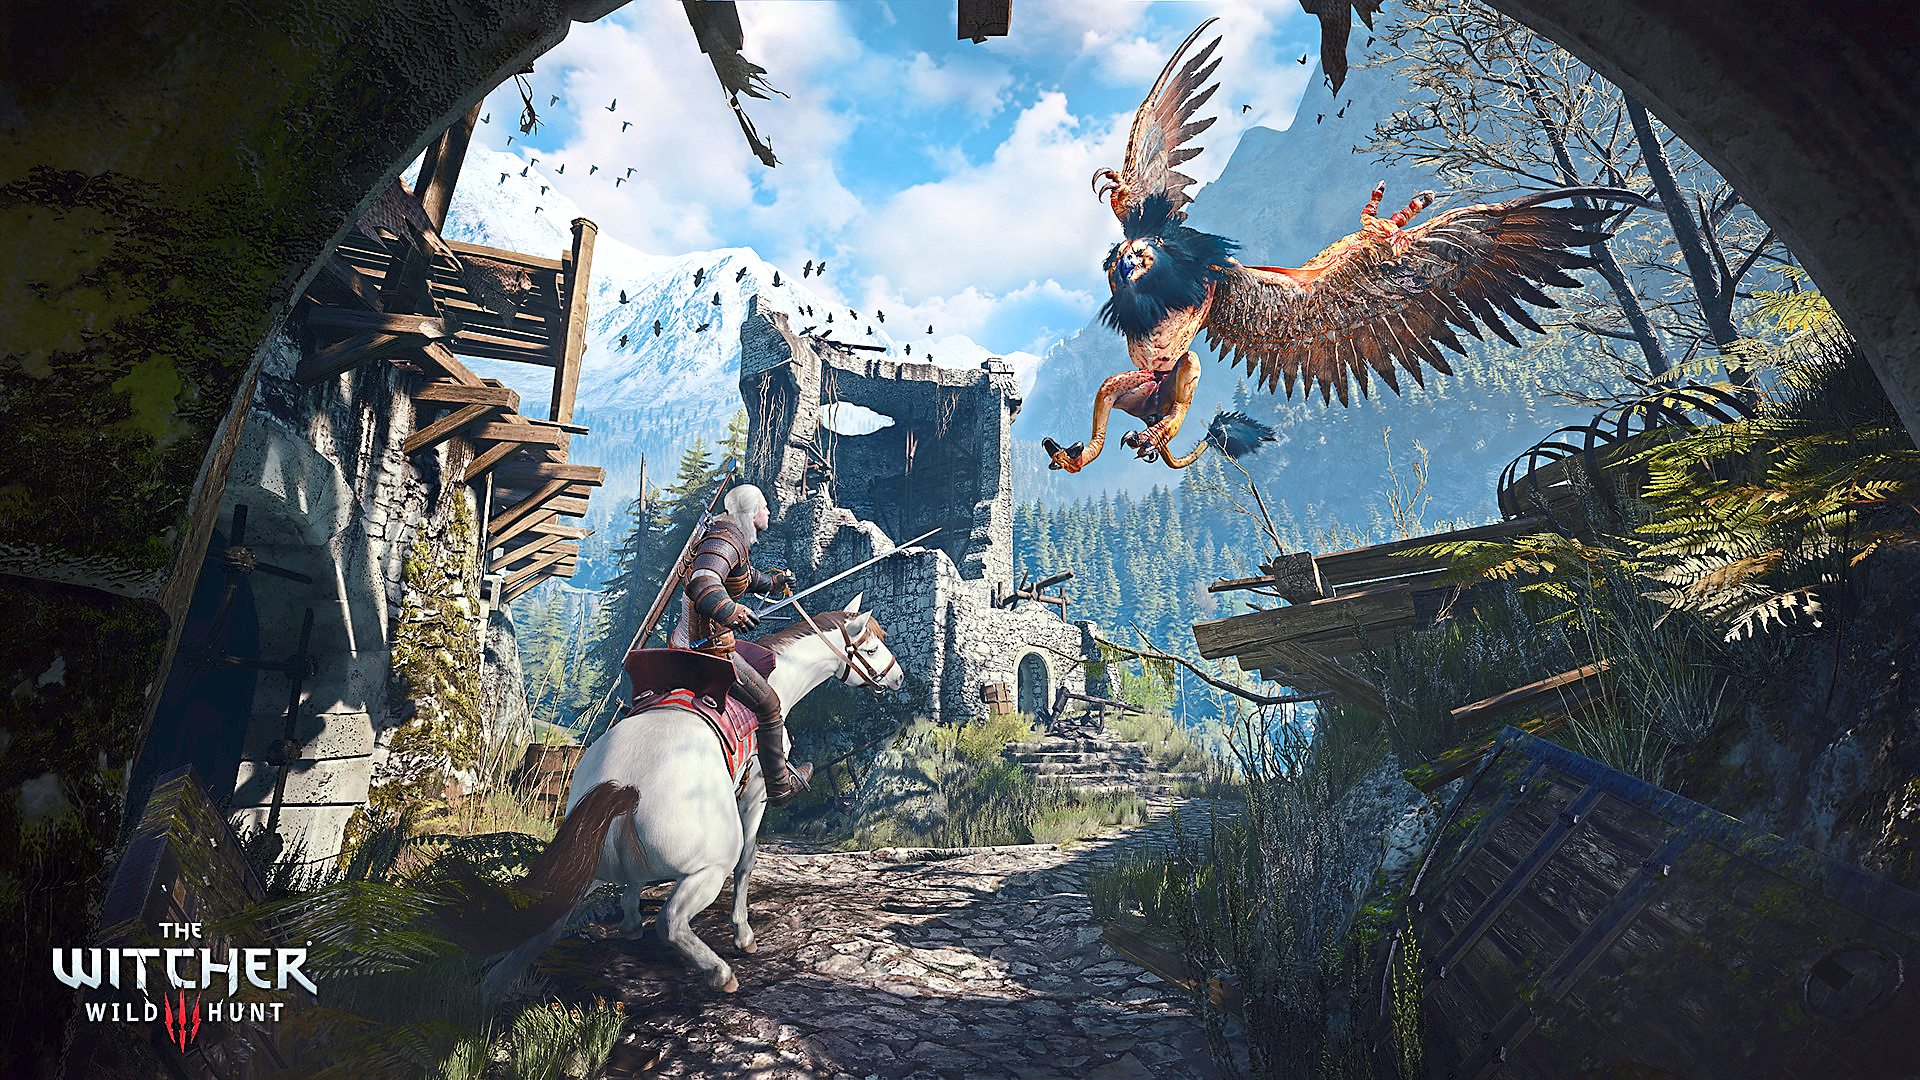 Large files: with customers demanding graphically rich games, download sizes for games like The Witcher 3 can be as large as 20GB